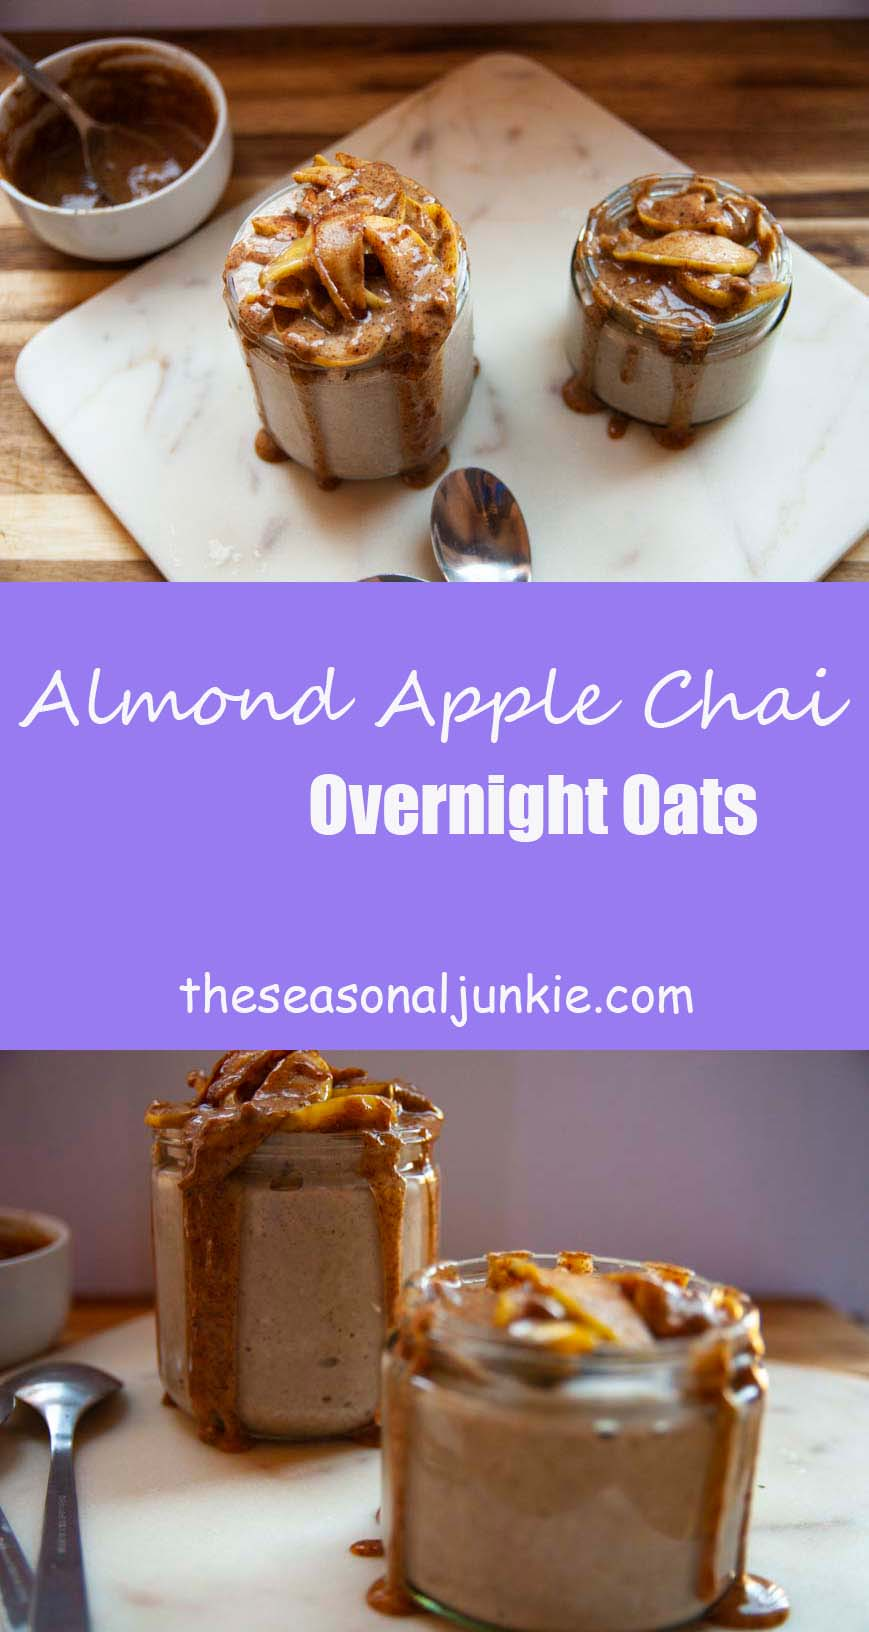 Apple Chai Overnight Oats- The Seasonal Junkie